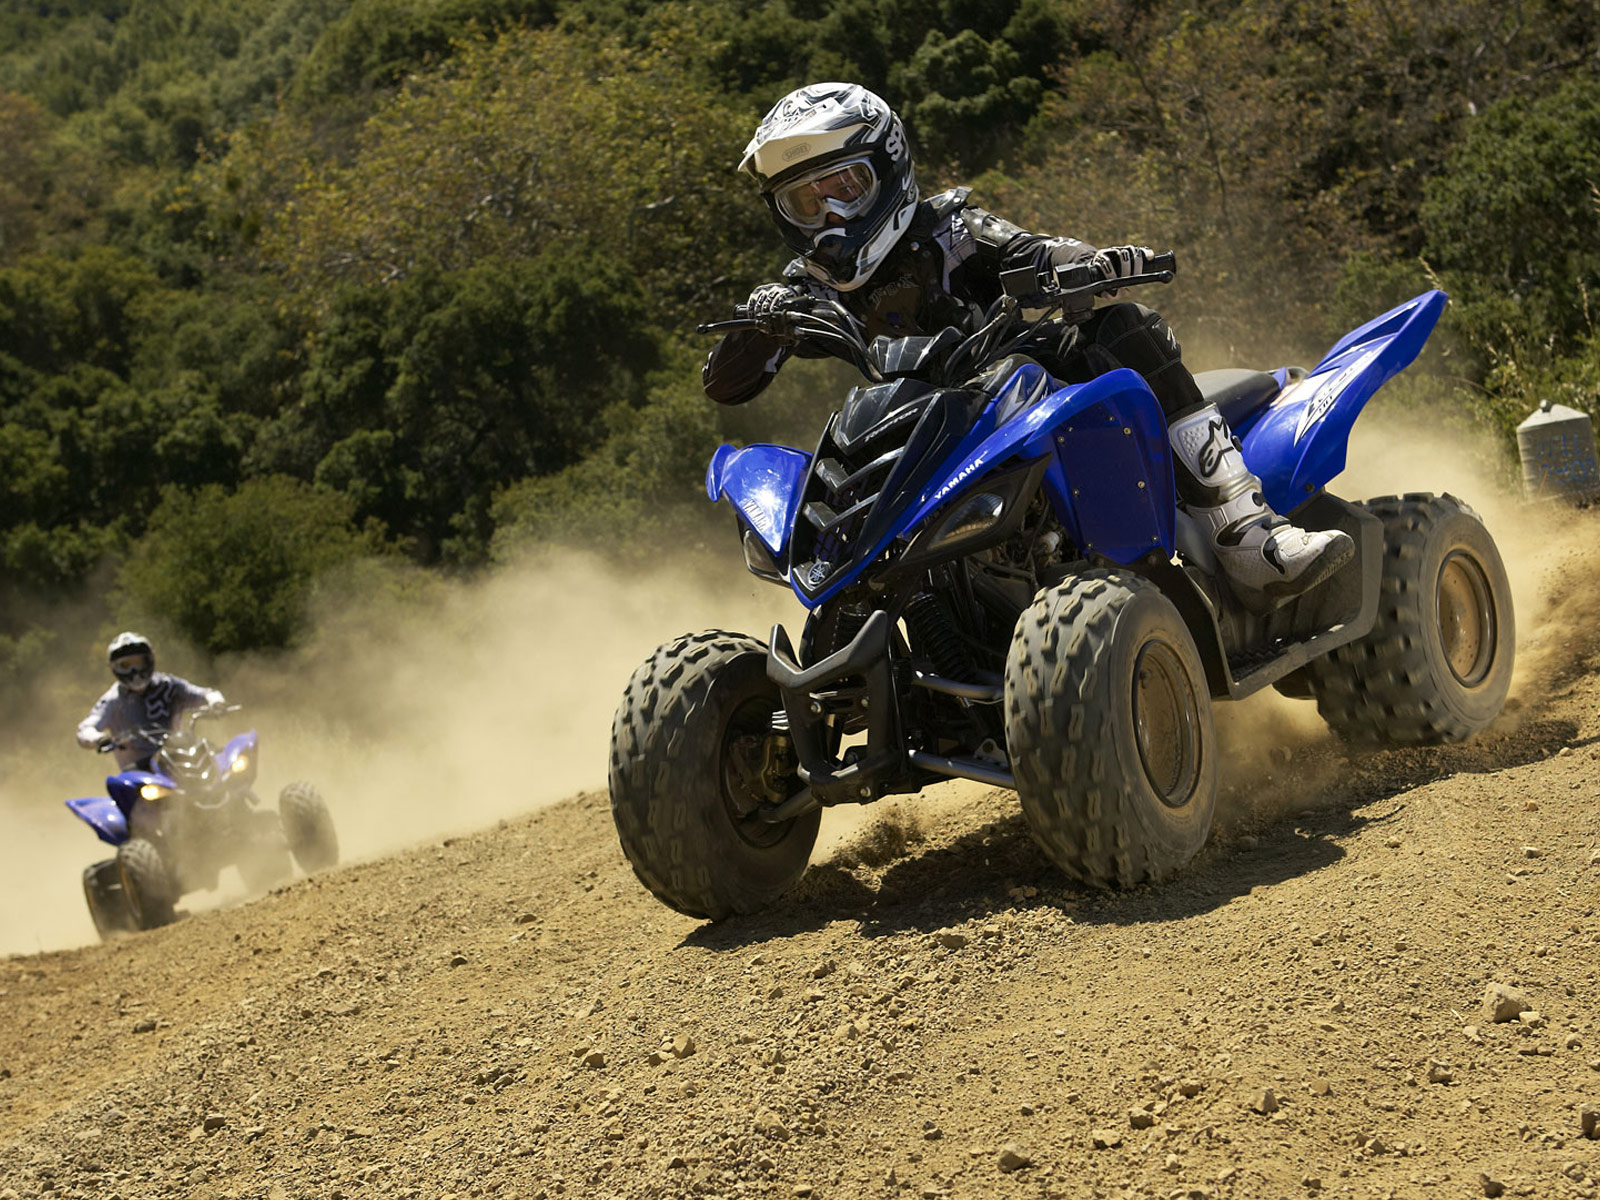 2011 YAMAHA Raptor 90 pictures specs ATV accident lawyers 1600x1200